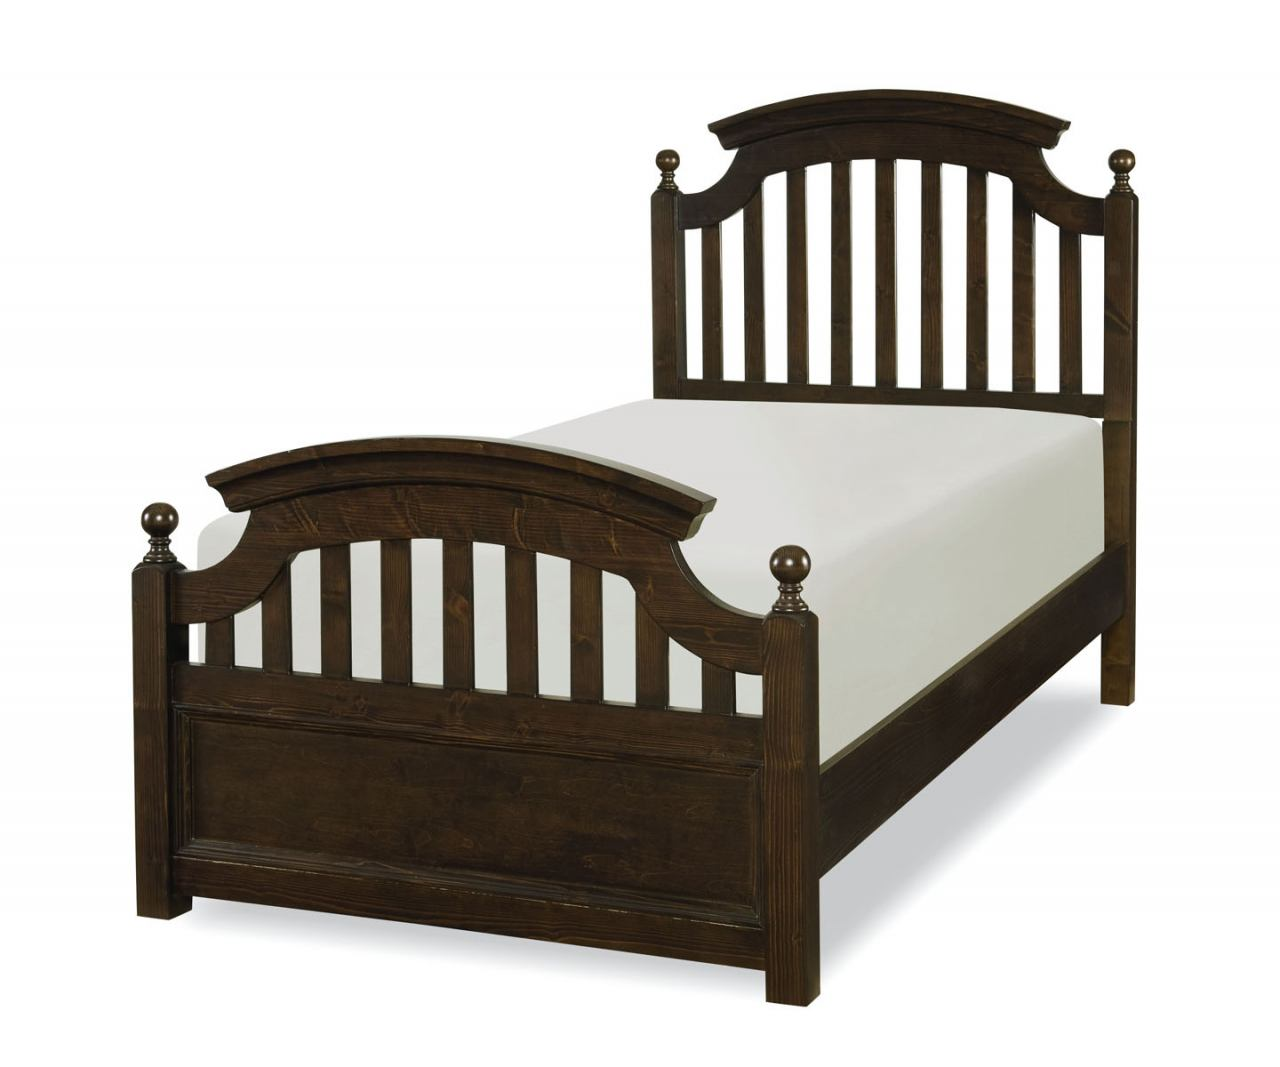 Legacy Classic Kids Academy Twin Panel Bed in Molasses 5810-4103K CODE:UNIV20 for 20% Off